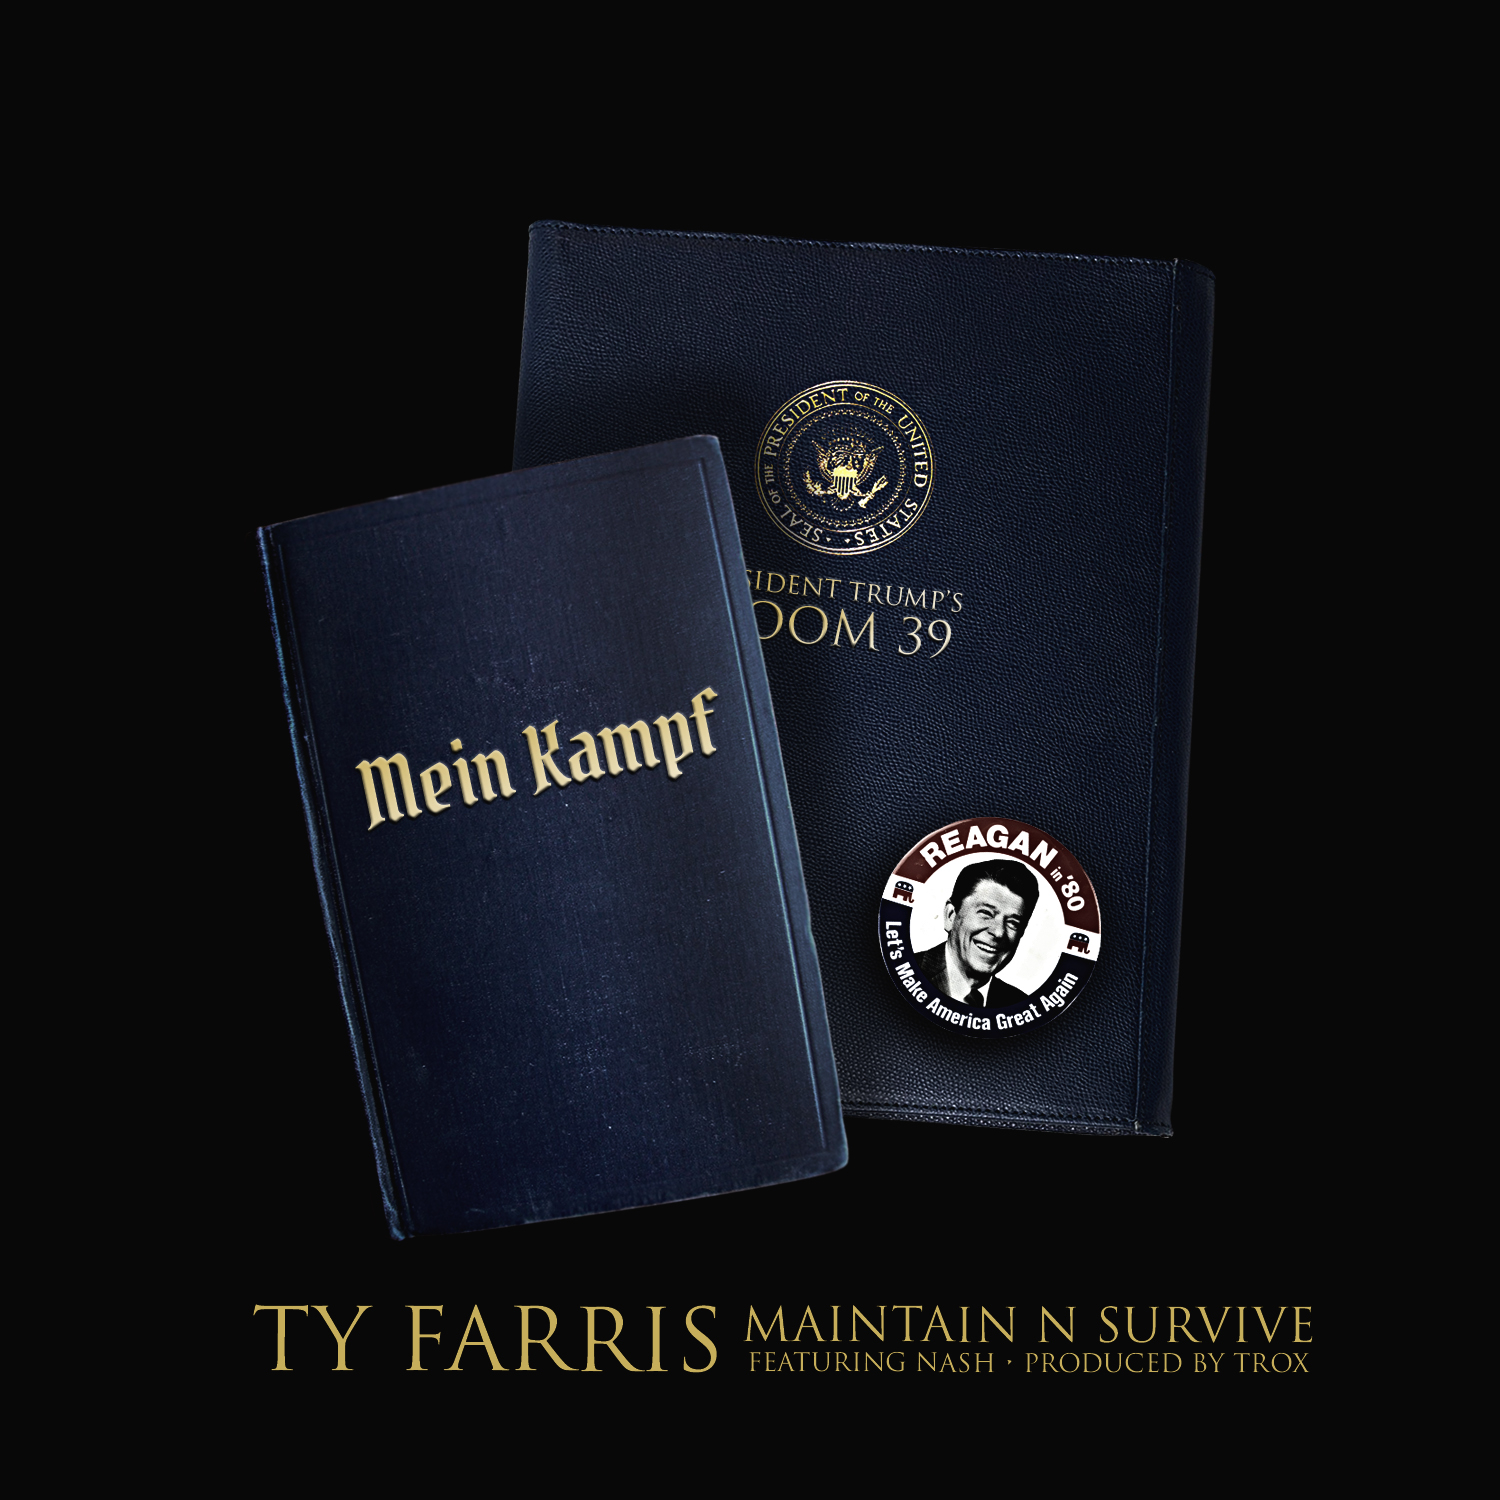 ty-farris-maintain-n-survive_2